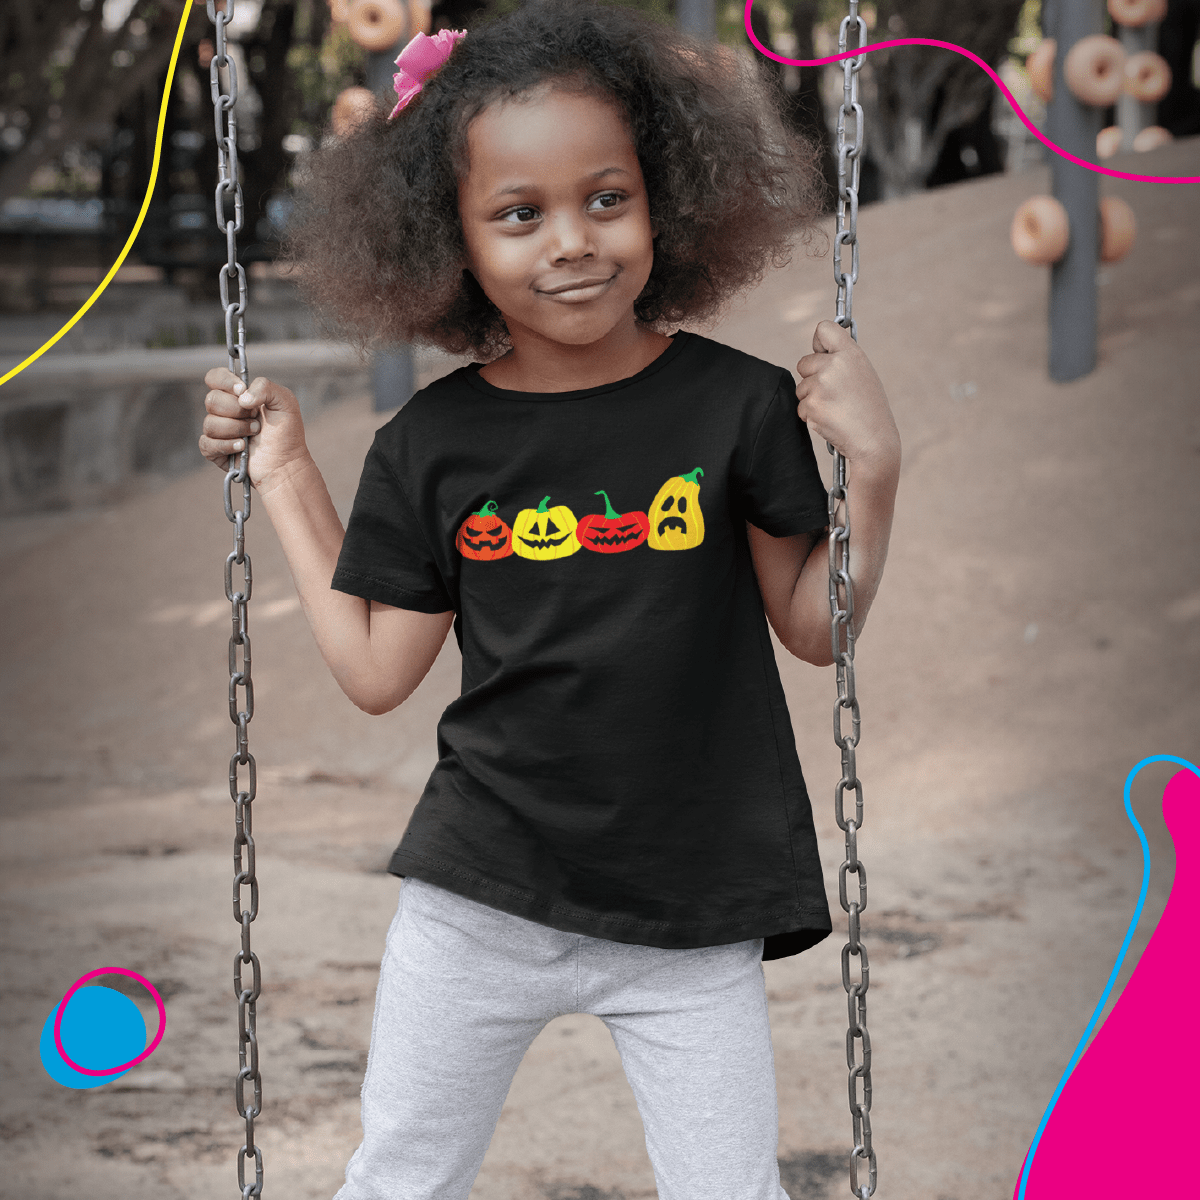 Black girl playing on a swing, wearing a POD shirt with a Halloween design on it